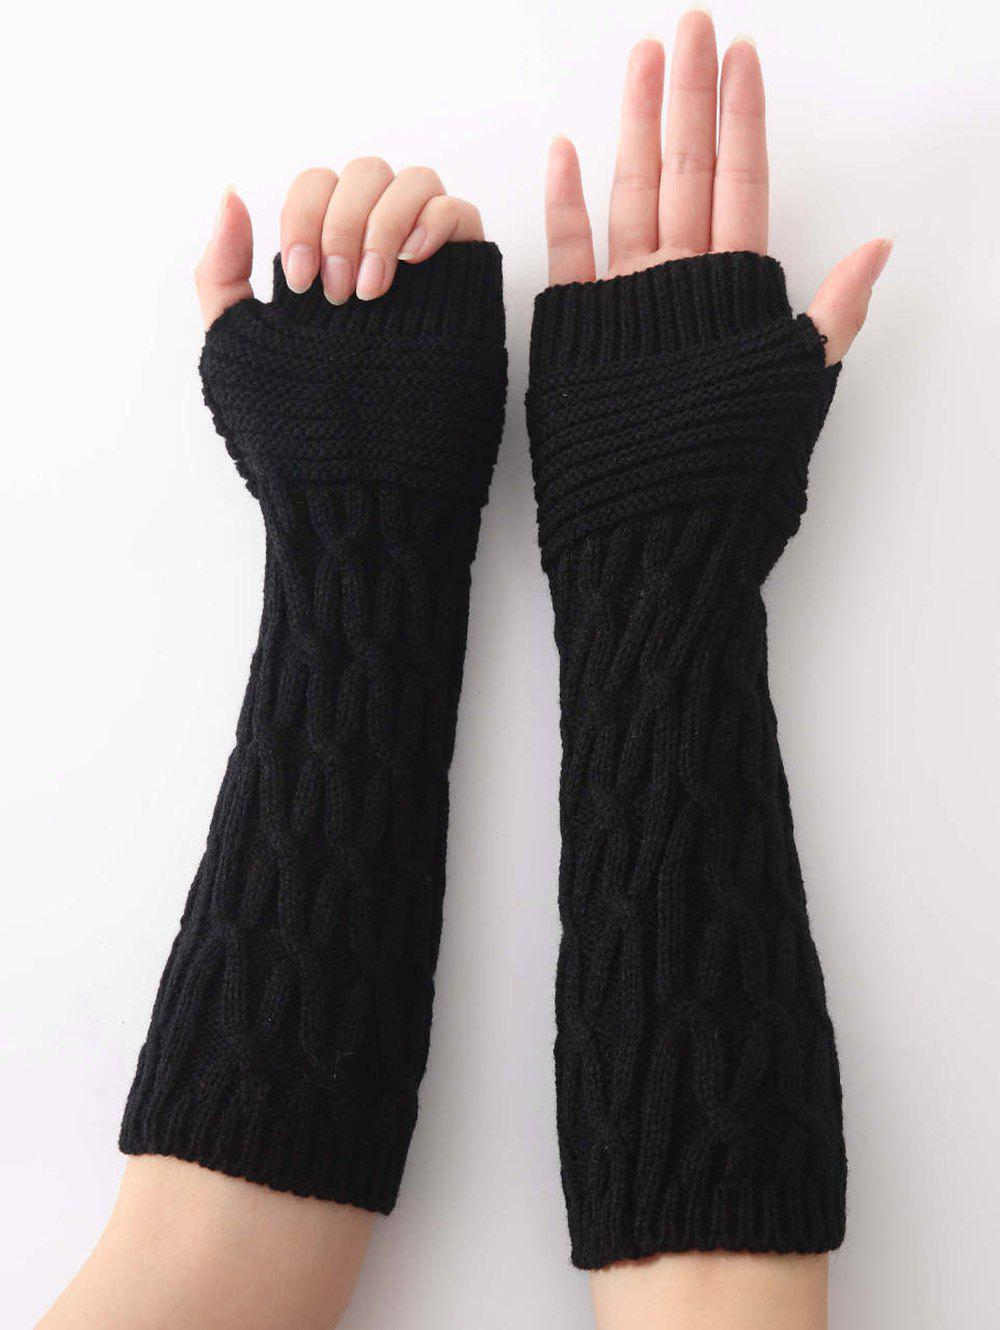 Affordable Unique Irregular Striped Crochet Knitted Gloves